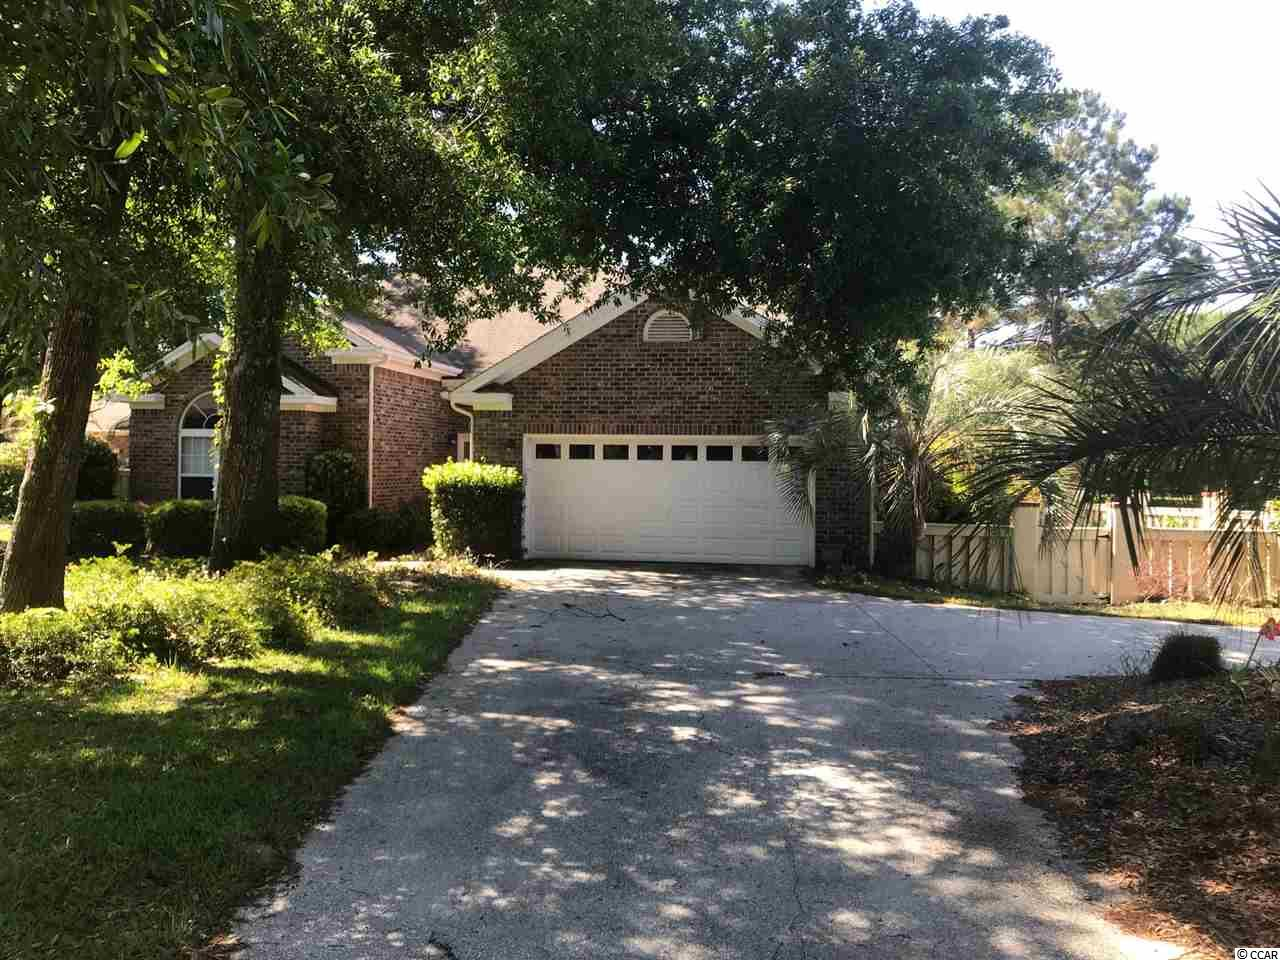 Gorgeous 3bd/2ba on the water AND golf course in gated community w/ private, fenced-in pool - only 5 mins to the beach! Willbrook Plantation members enjoy ACCESS TO ALL LITCHFIELD BY THE SEA AMENITIES. Relax pool-side or entertain family on the separate large back porch overlooking the lake. Use the huge bonus room as a 4th bed! This home boasts amazing features like granite countertops, hardwood floors, stainless steel appliances and fireplace! Willbrook Plantation is just a few minutes drive to the Pawleys Island beaches and shopping and everything Myrtle Beach has to offer including Coastal Grande Mall, Tanger Outlets, marinas, public docks, landings, restaurants, golf courses, shops, entertainment, Myrtle Beach International Airport, Broadway At The Beach, The Market Common, Barefoot Resort and Coastal Carolina University (CCU). And only 60 miles north of beautiful, historic Charleston, SC!